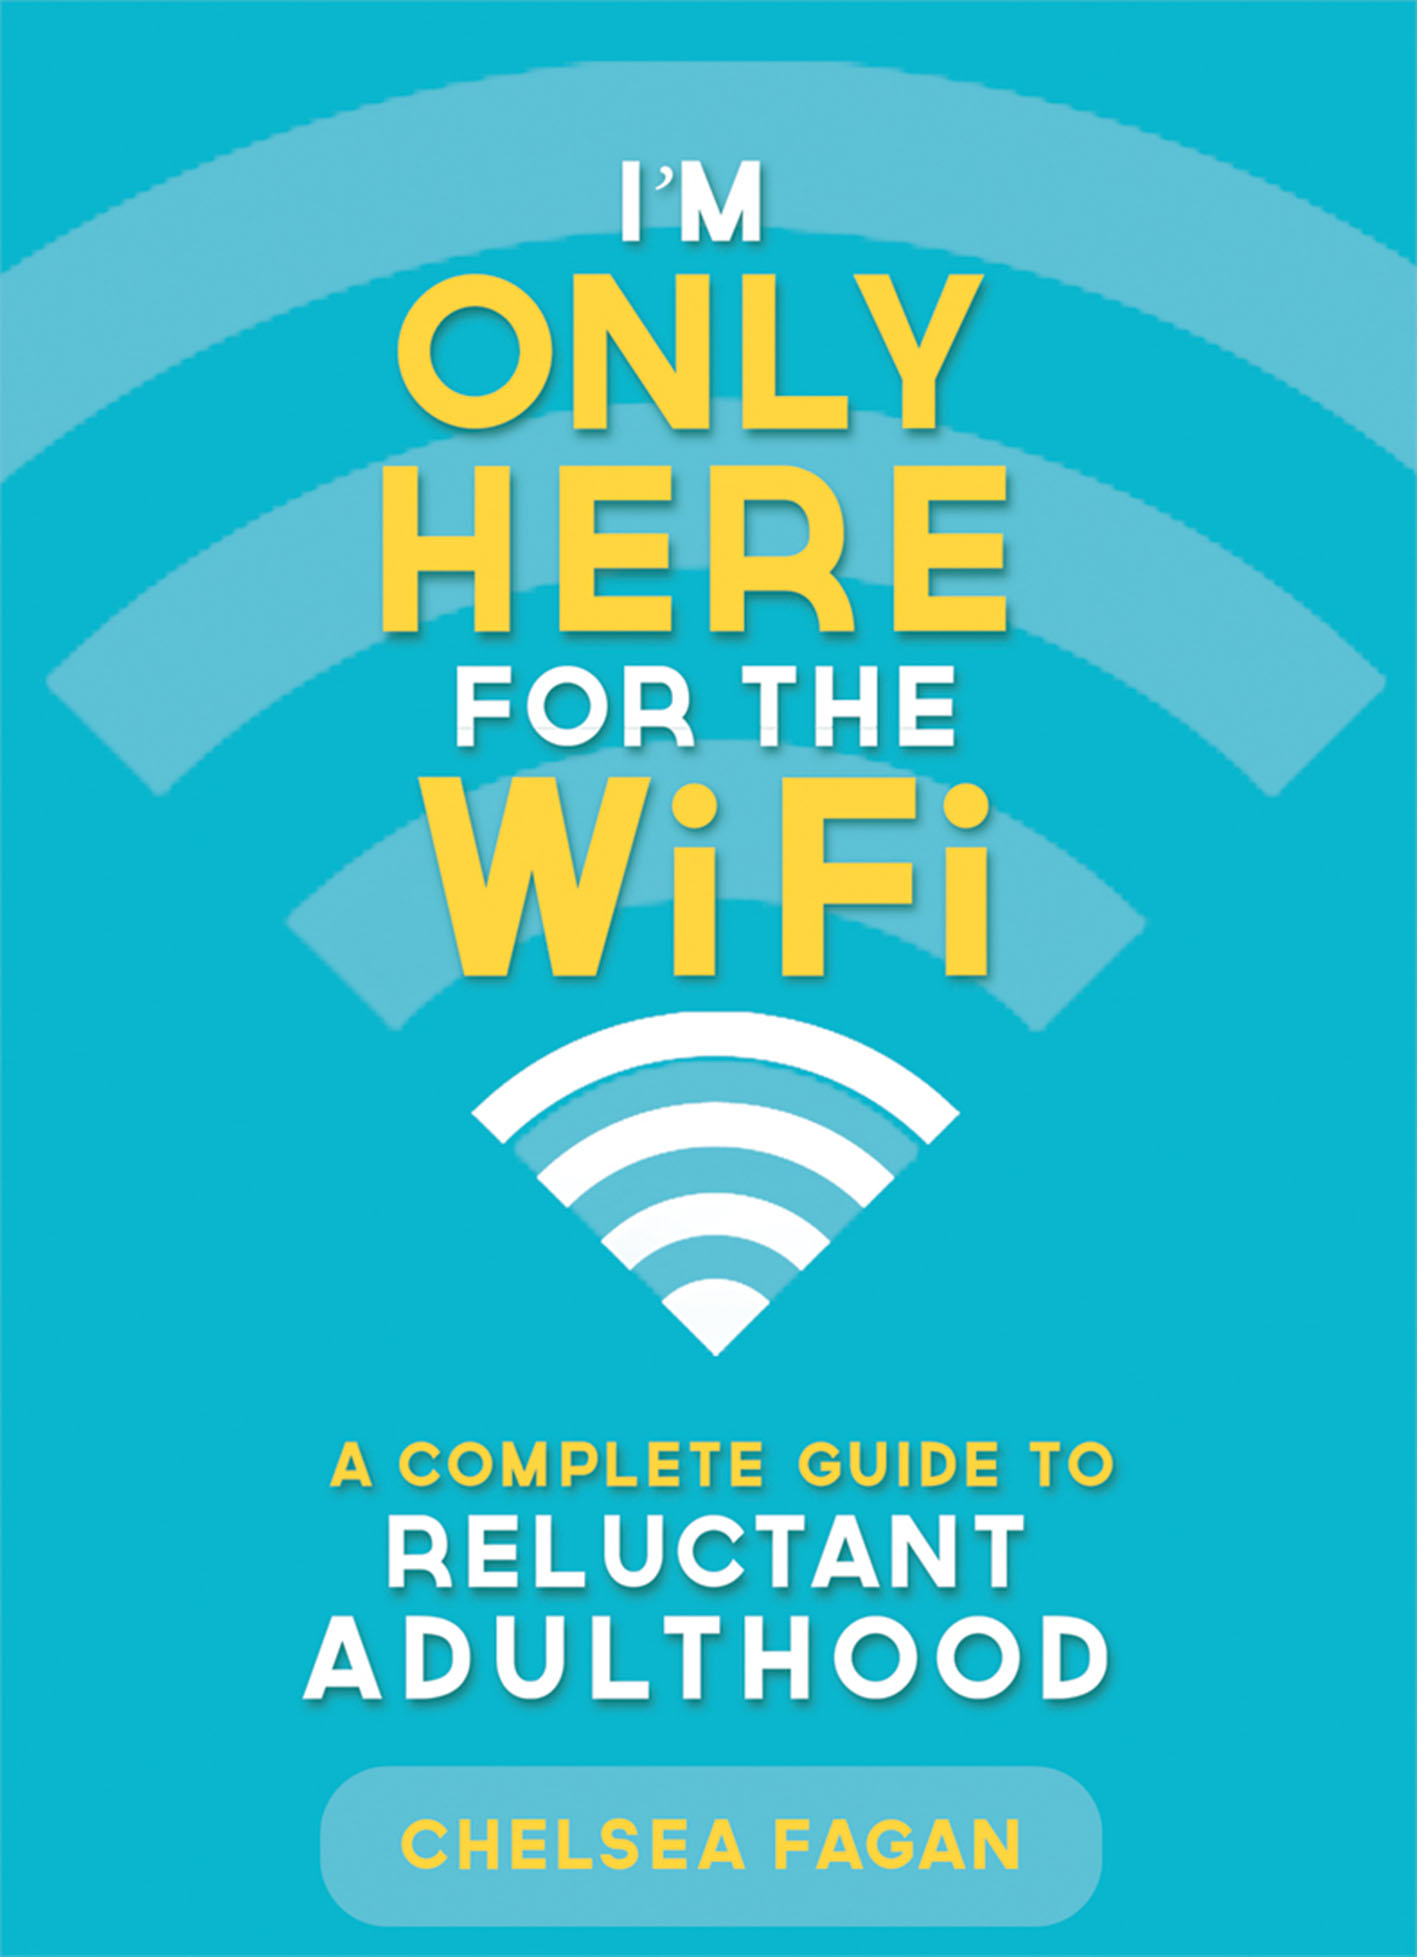 I'm Only Here for the WiFi Chelsea Fagan